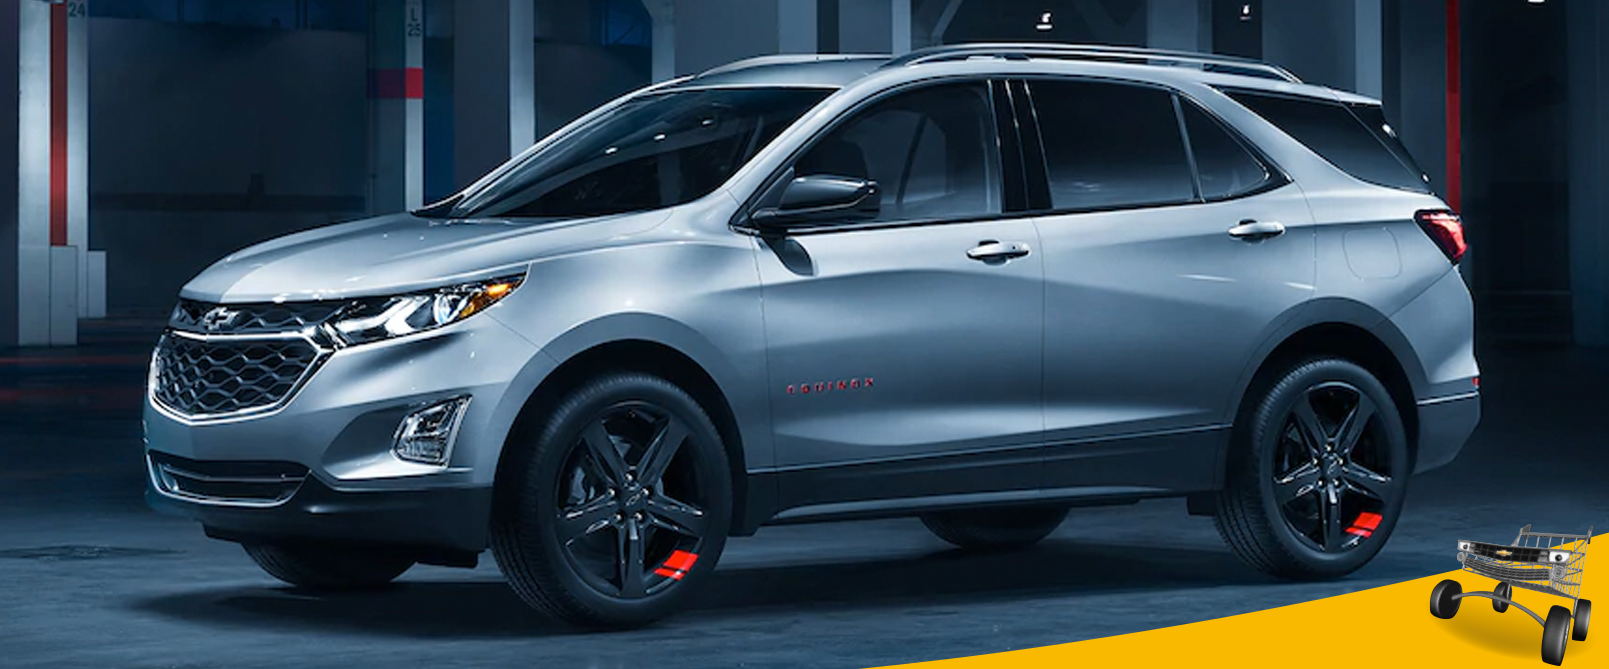 Gary IL 2020 Chevy Equinox SUV Dealer